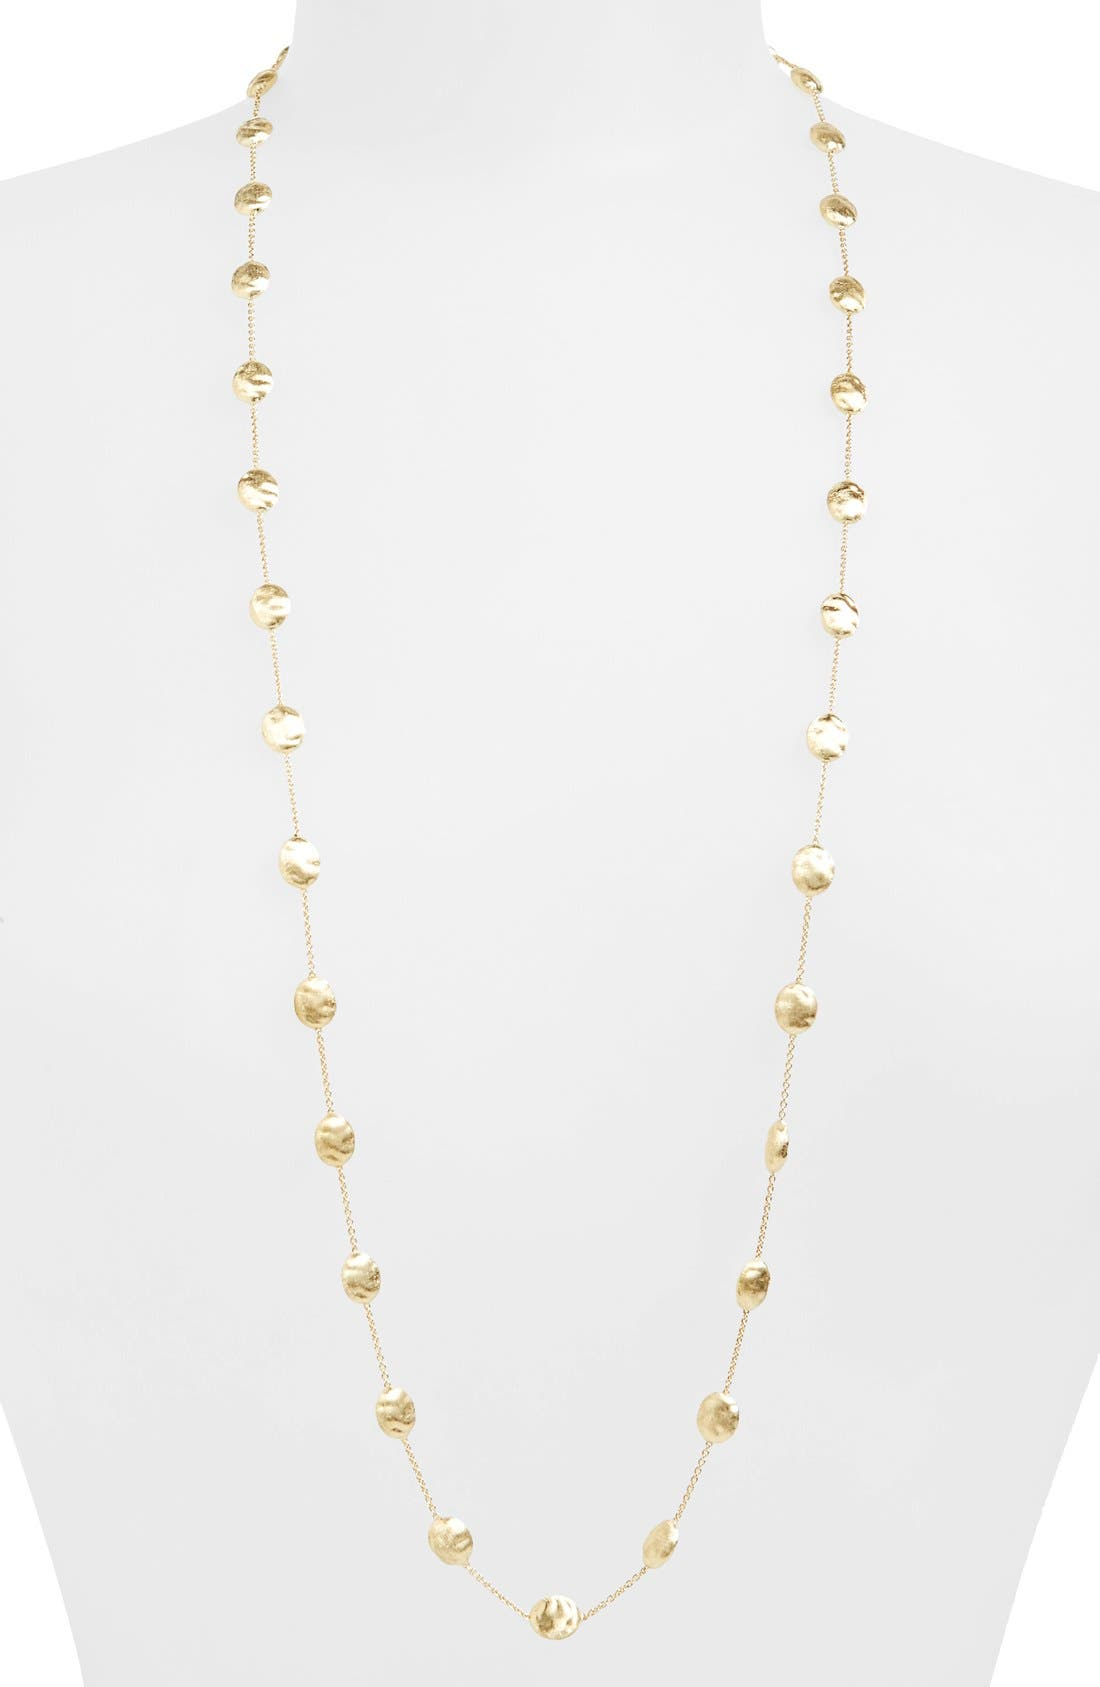 Main Image - Marco Bicego 'Siviglia' Long Disc Station Necklace